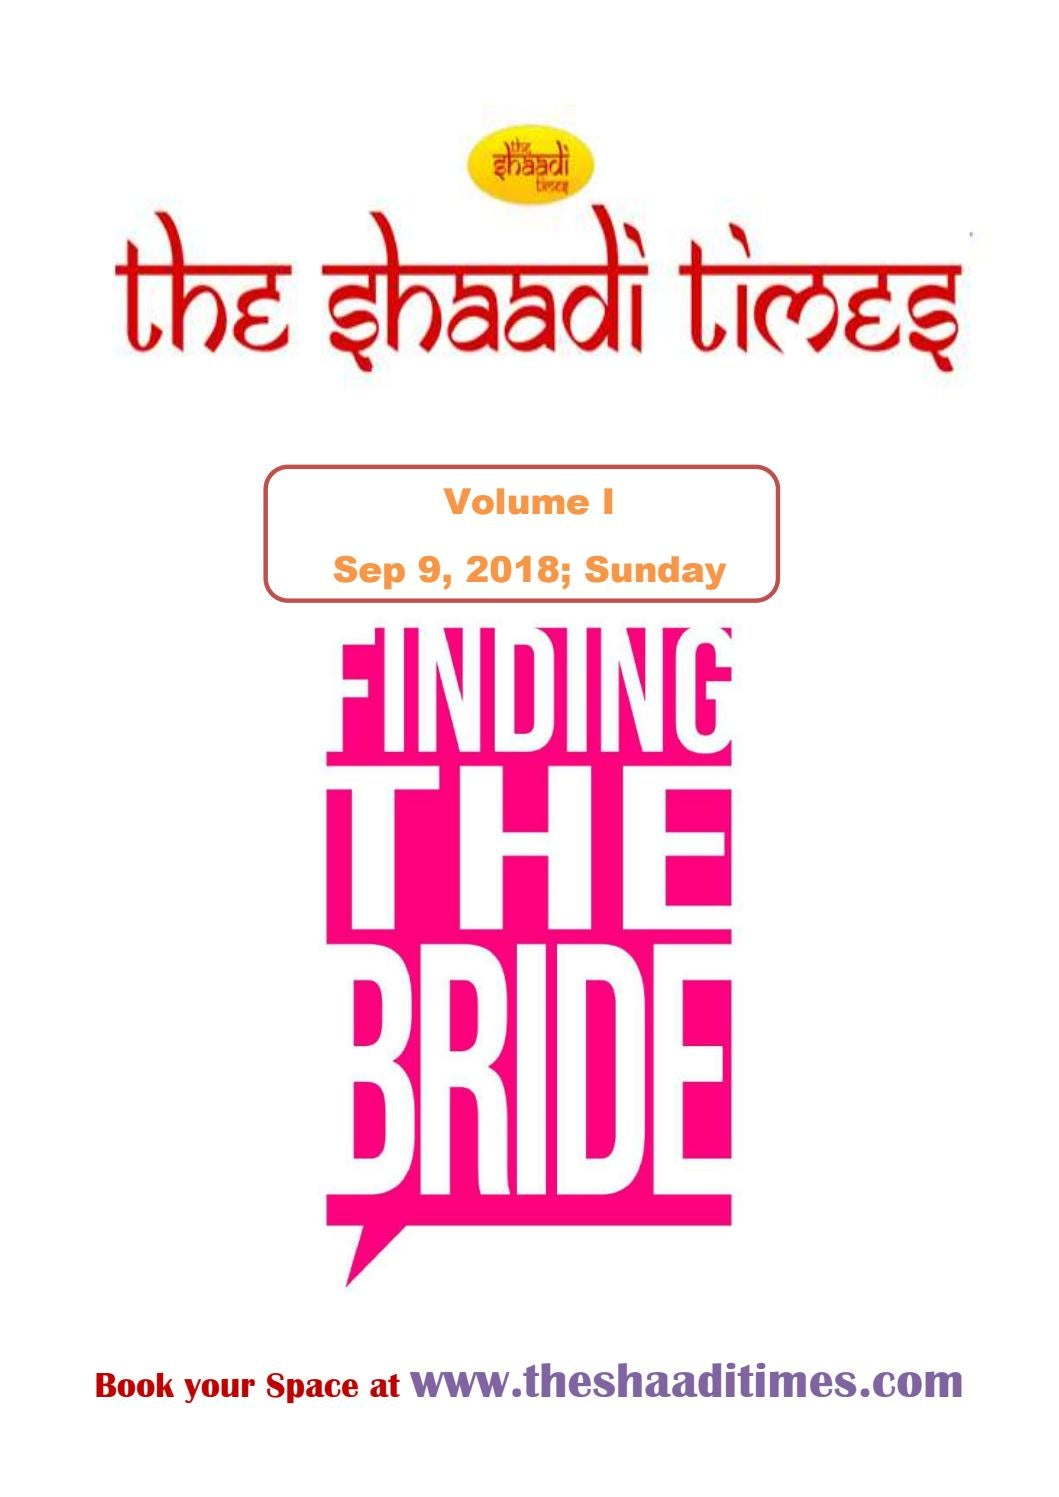 The Shaadi Times - Finding Bride by social theshaaditimes